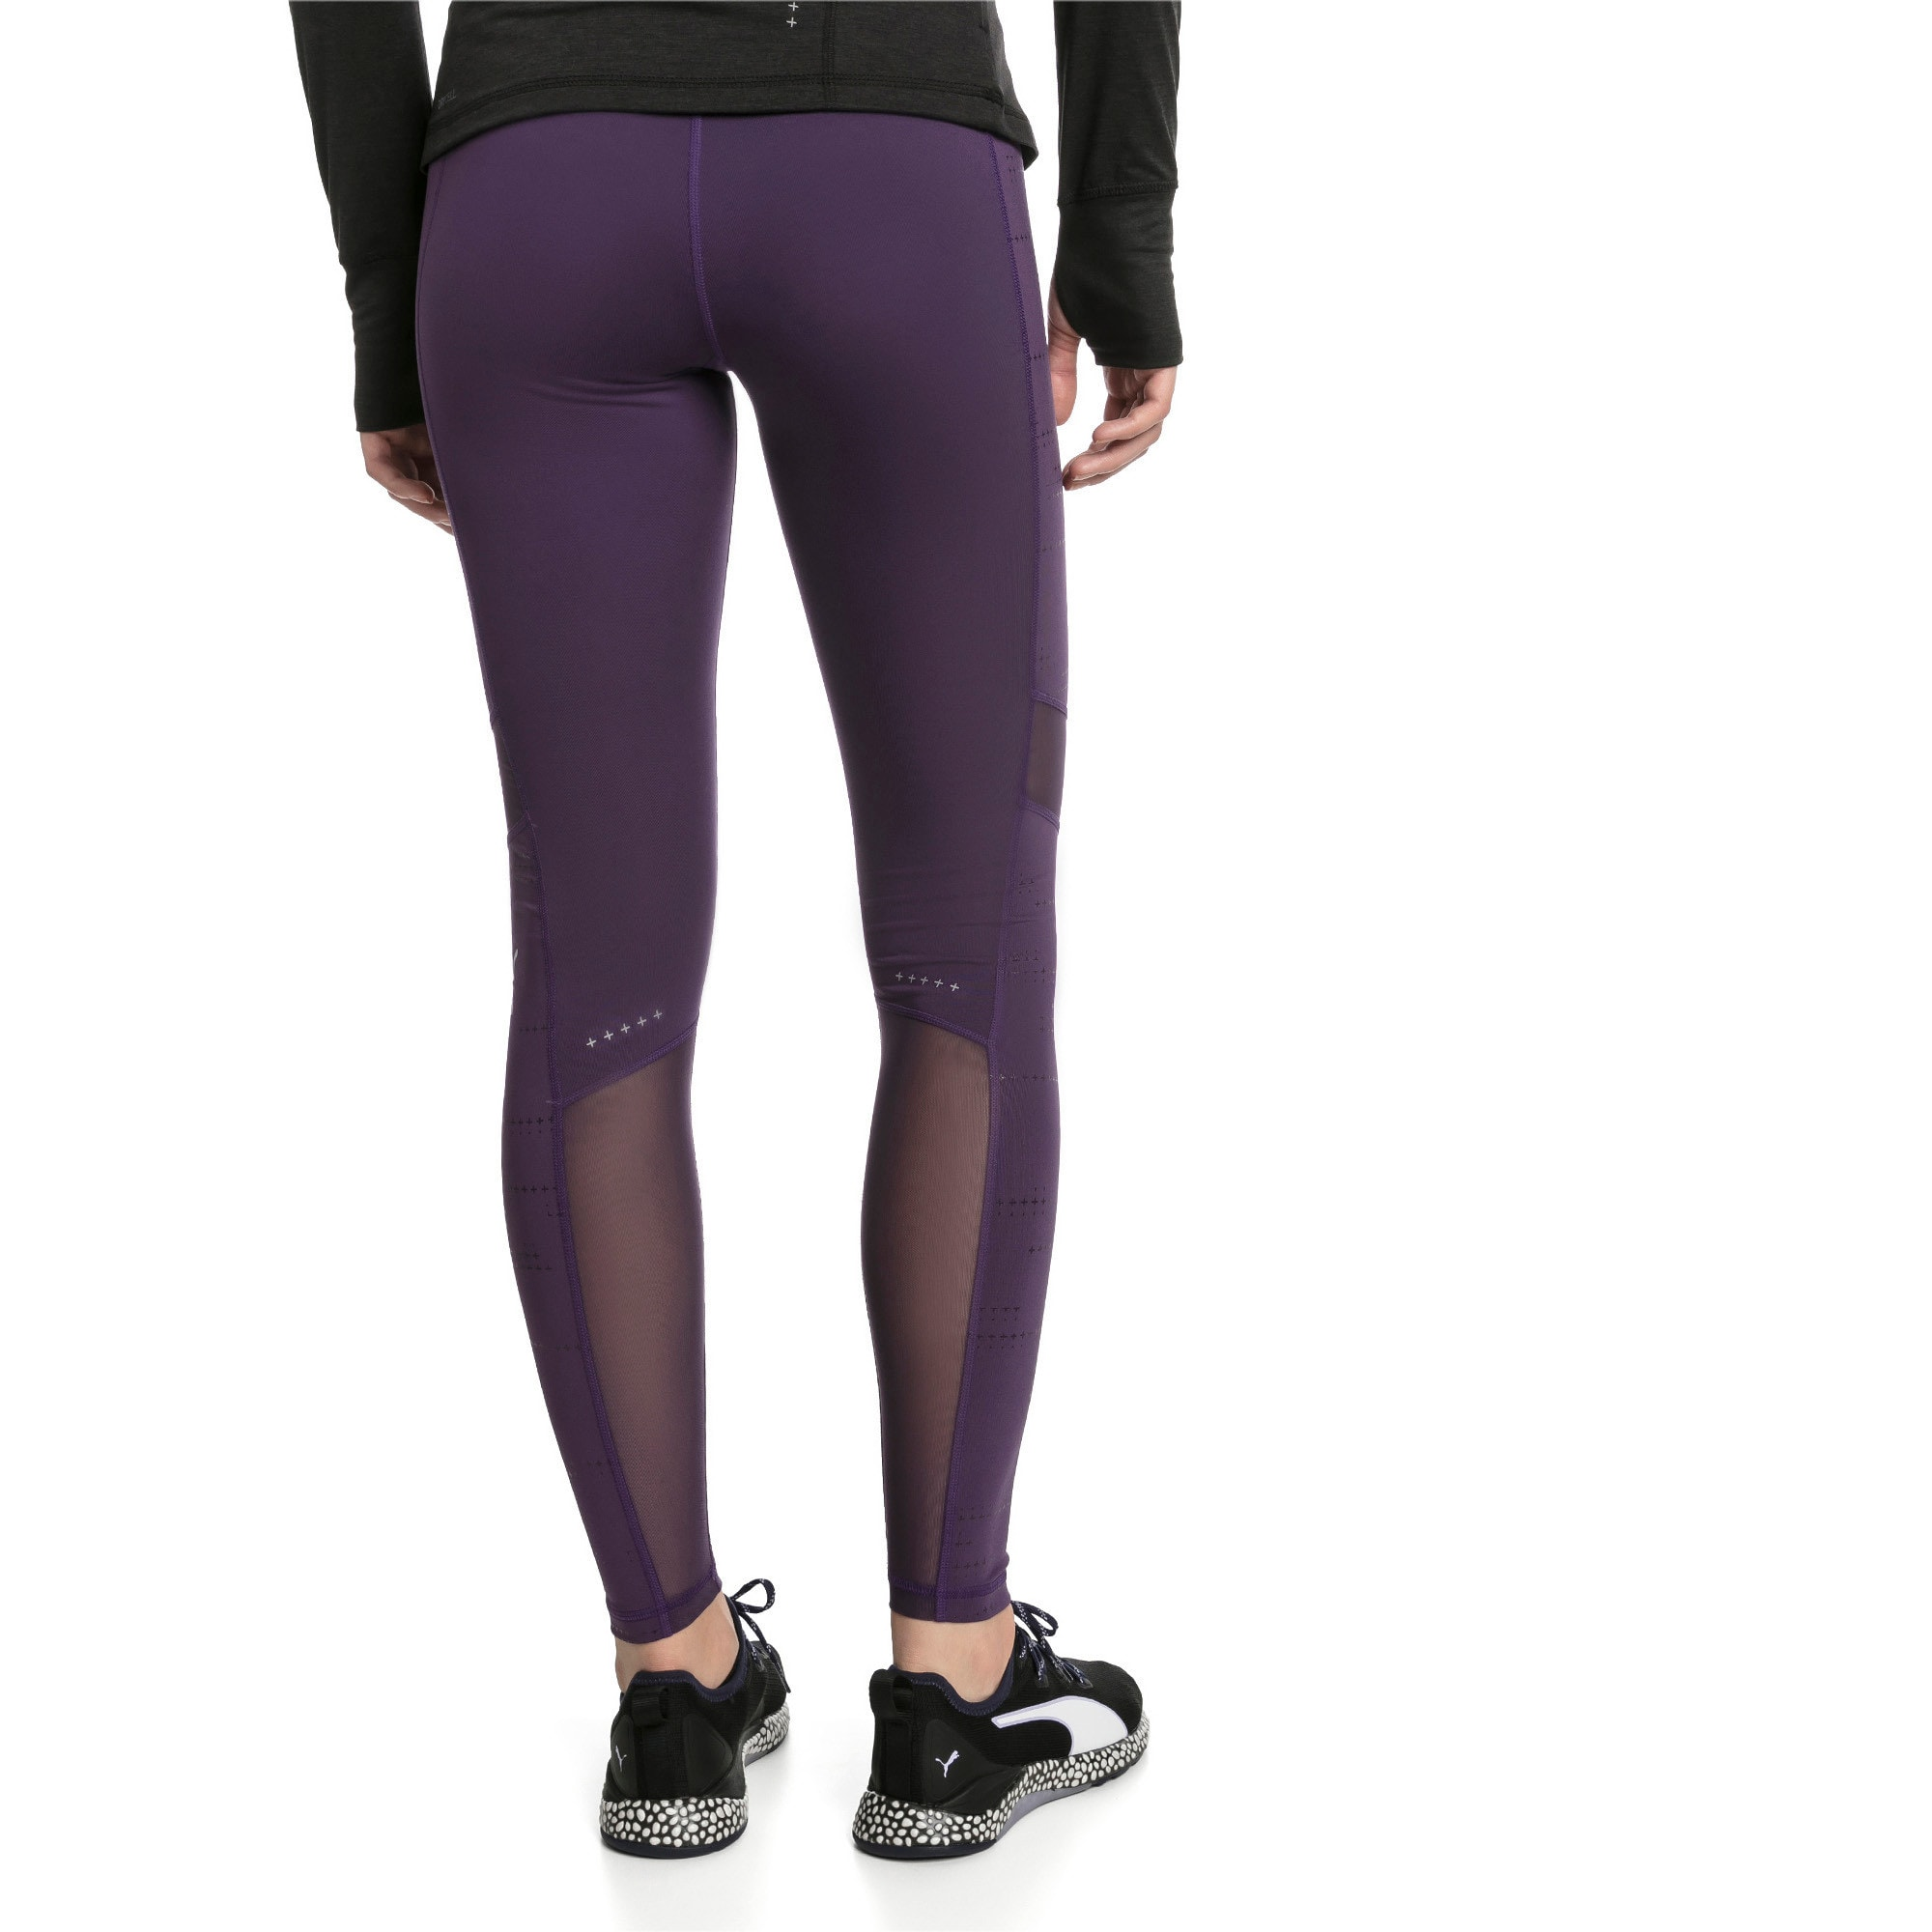 Thumbnail 2 of Ignite Women's Running Leggings, Indigo, medium-IND